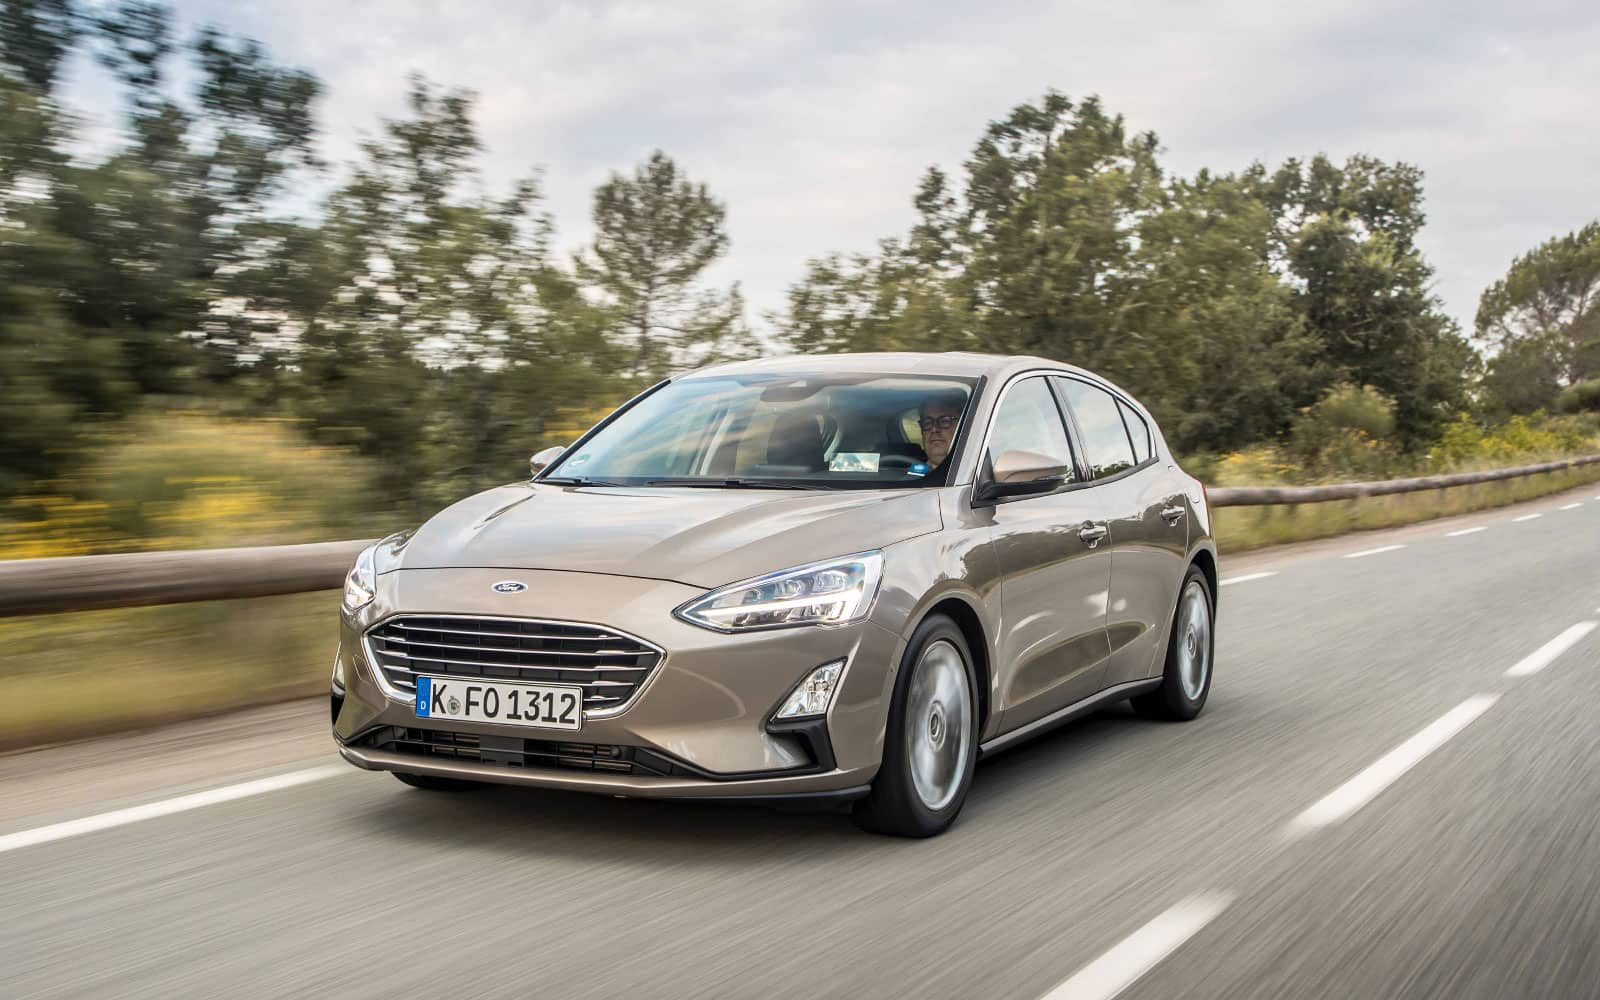 2012 Ford Focus Parts >> The 2018 Ford Focus   Now available at Arnold Clark